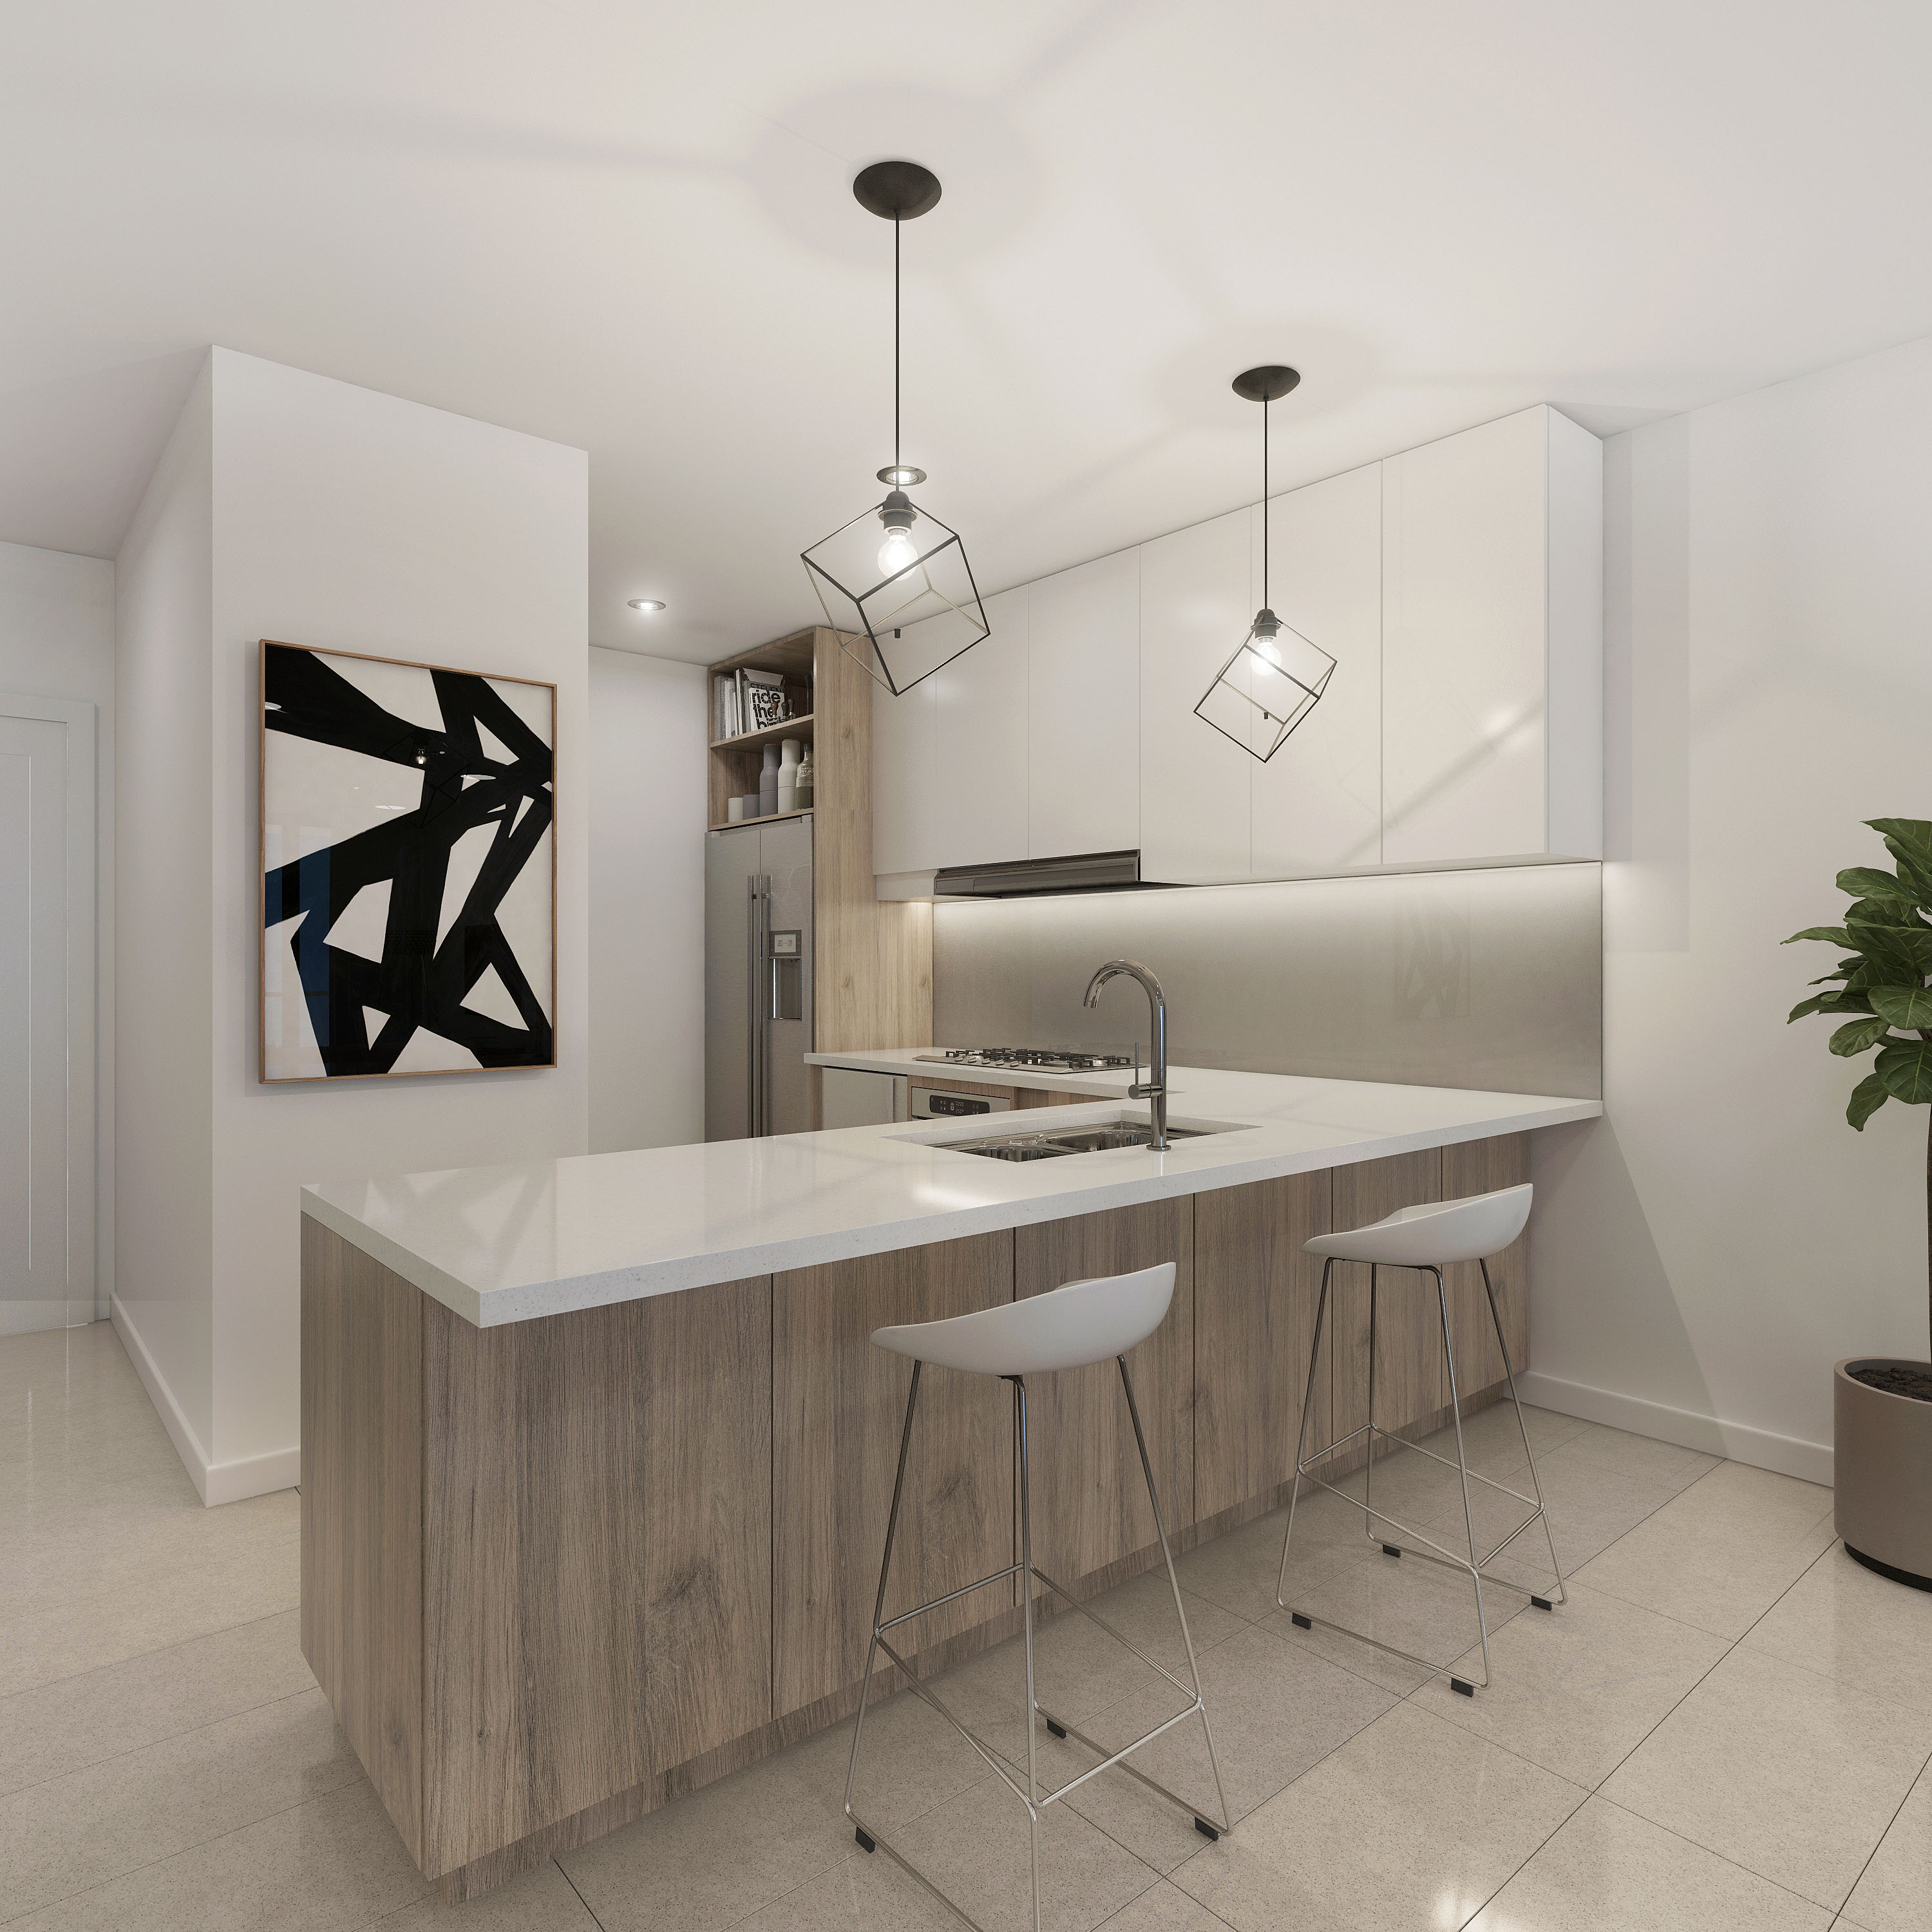 4_-_Interior_-_Kitchen_-_Low_Res[1]